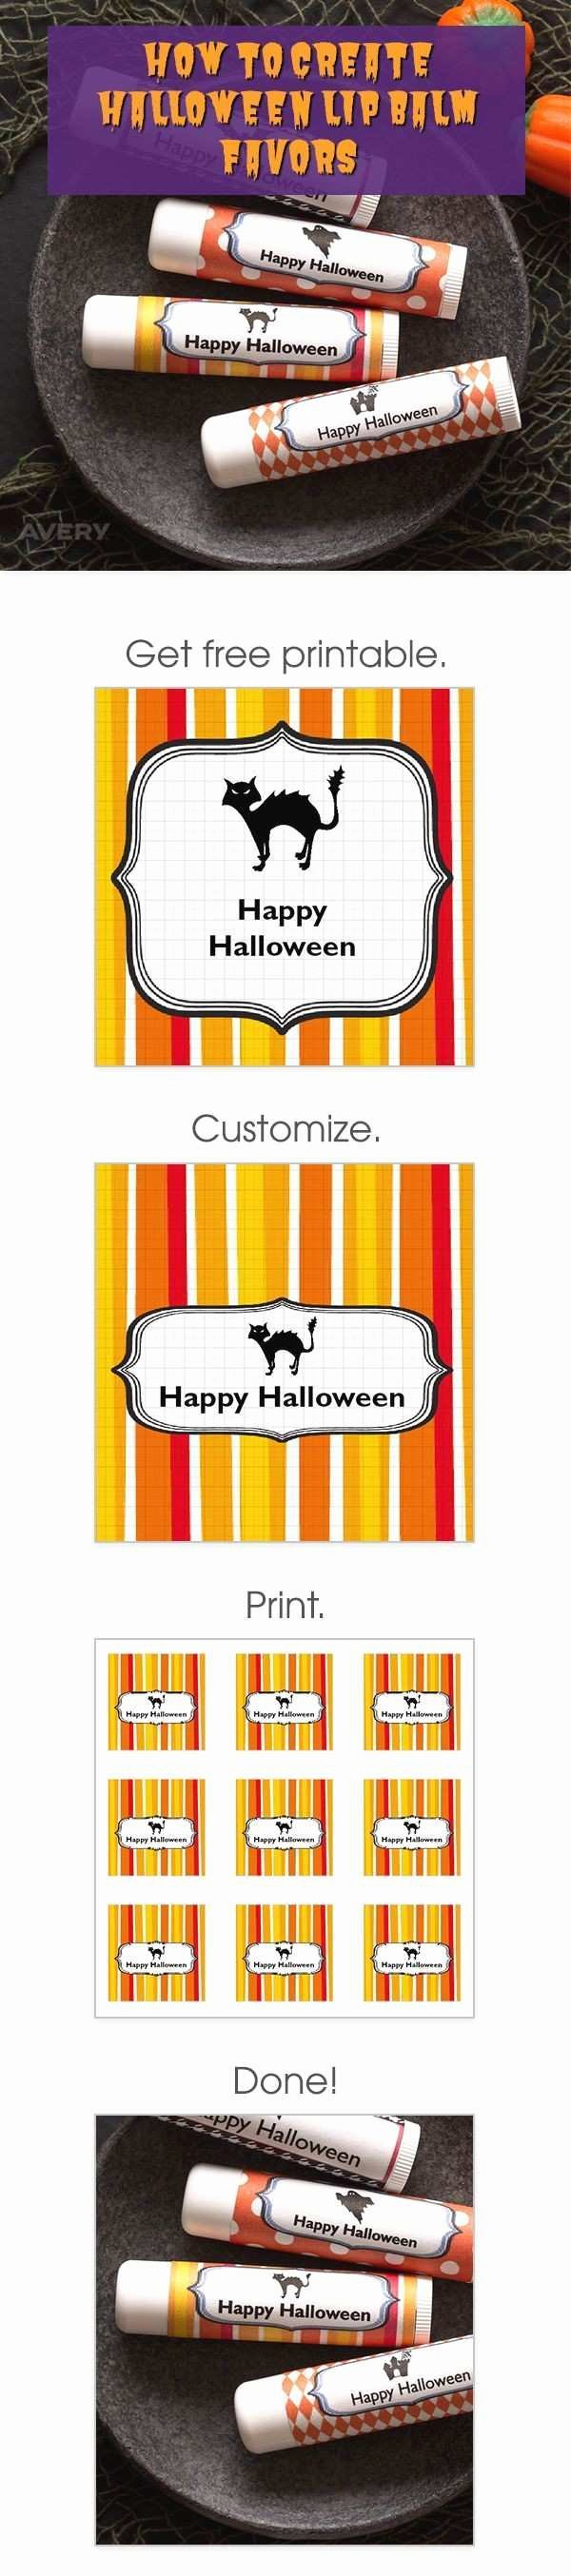 Polaroid Mailing Label Templates Lovely Beautiful Polaroid Round Adhesive Labels Free Template